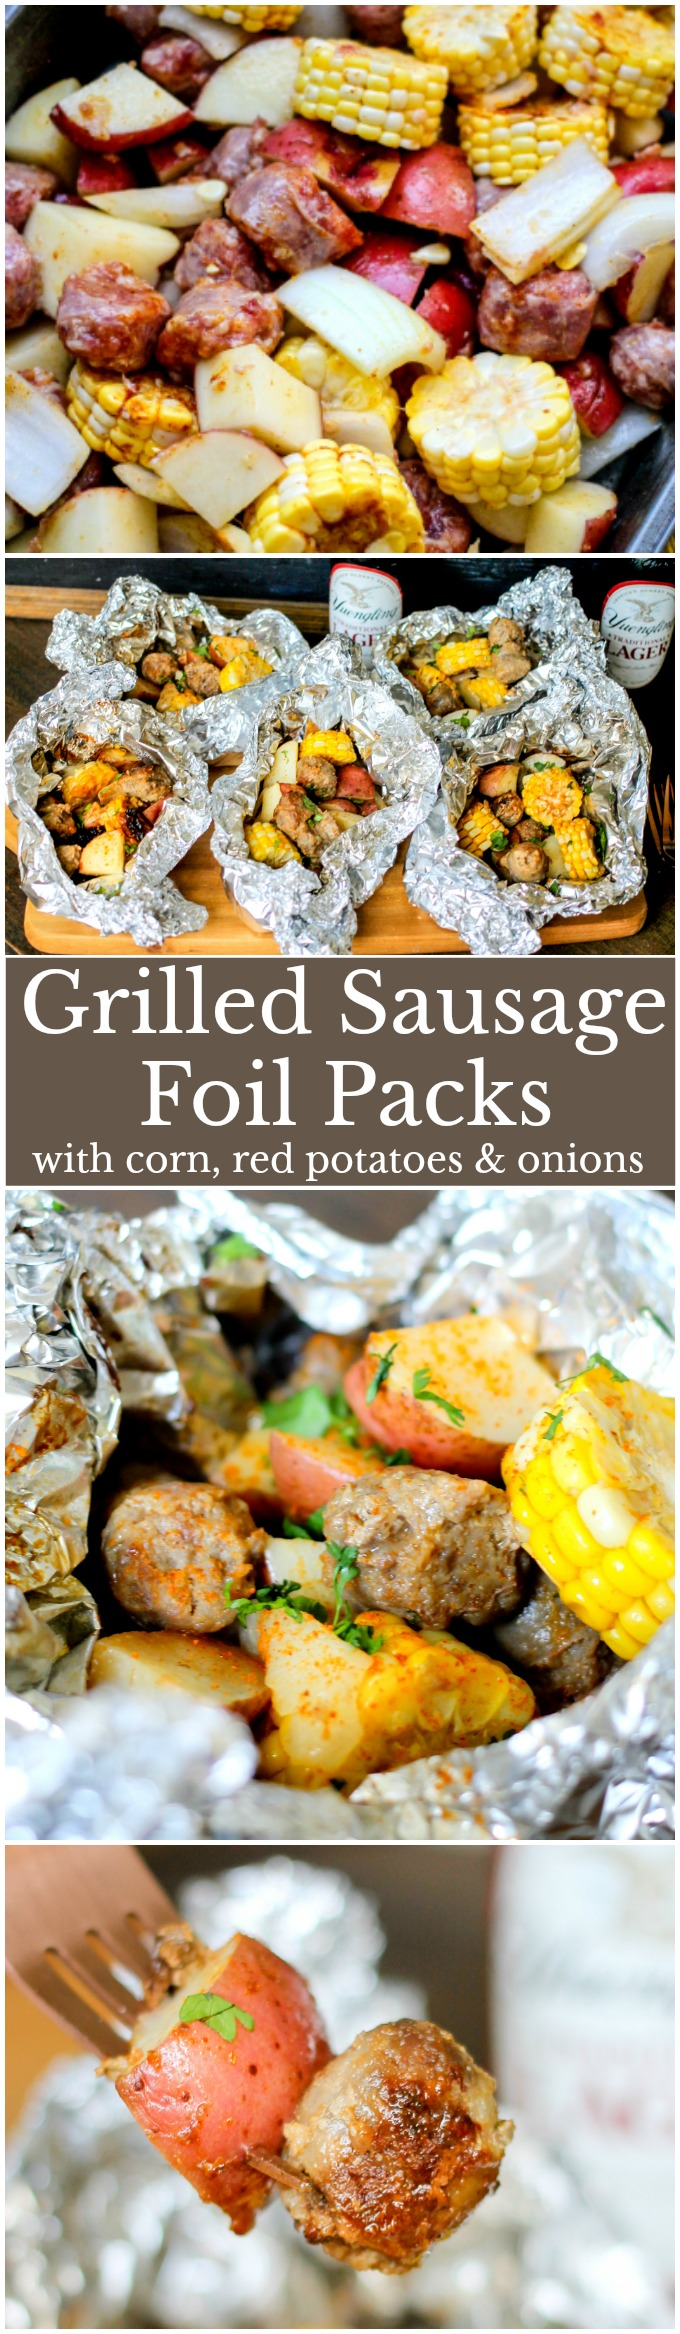 Grilled Sausage Foil Packs are loaded with delicious Yuengling infused sausage, red potatoes, mini corn cobs, and onions! Perfect for a quick easy dinner!